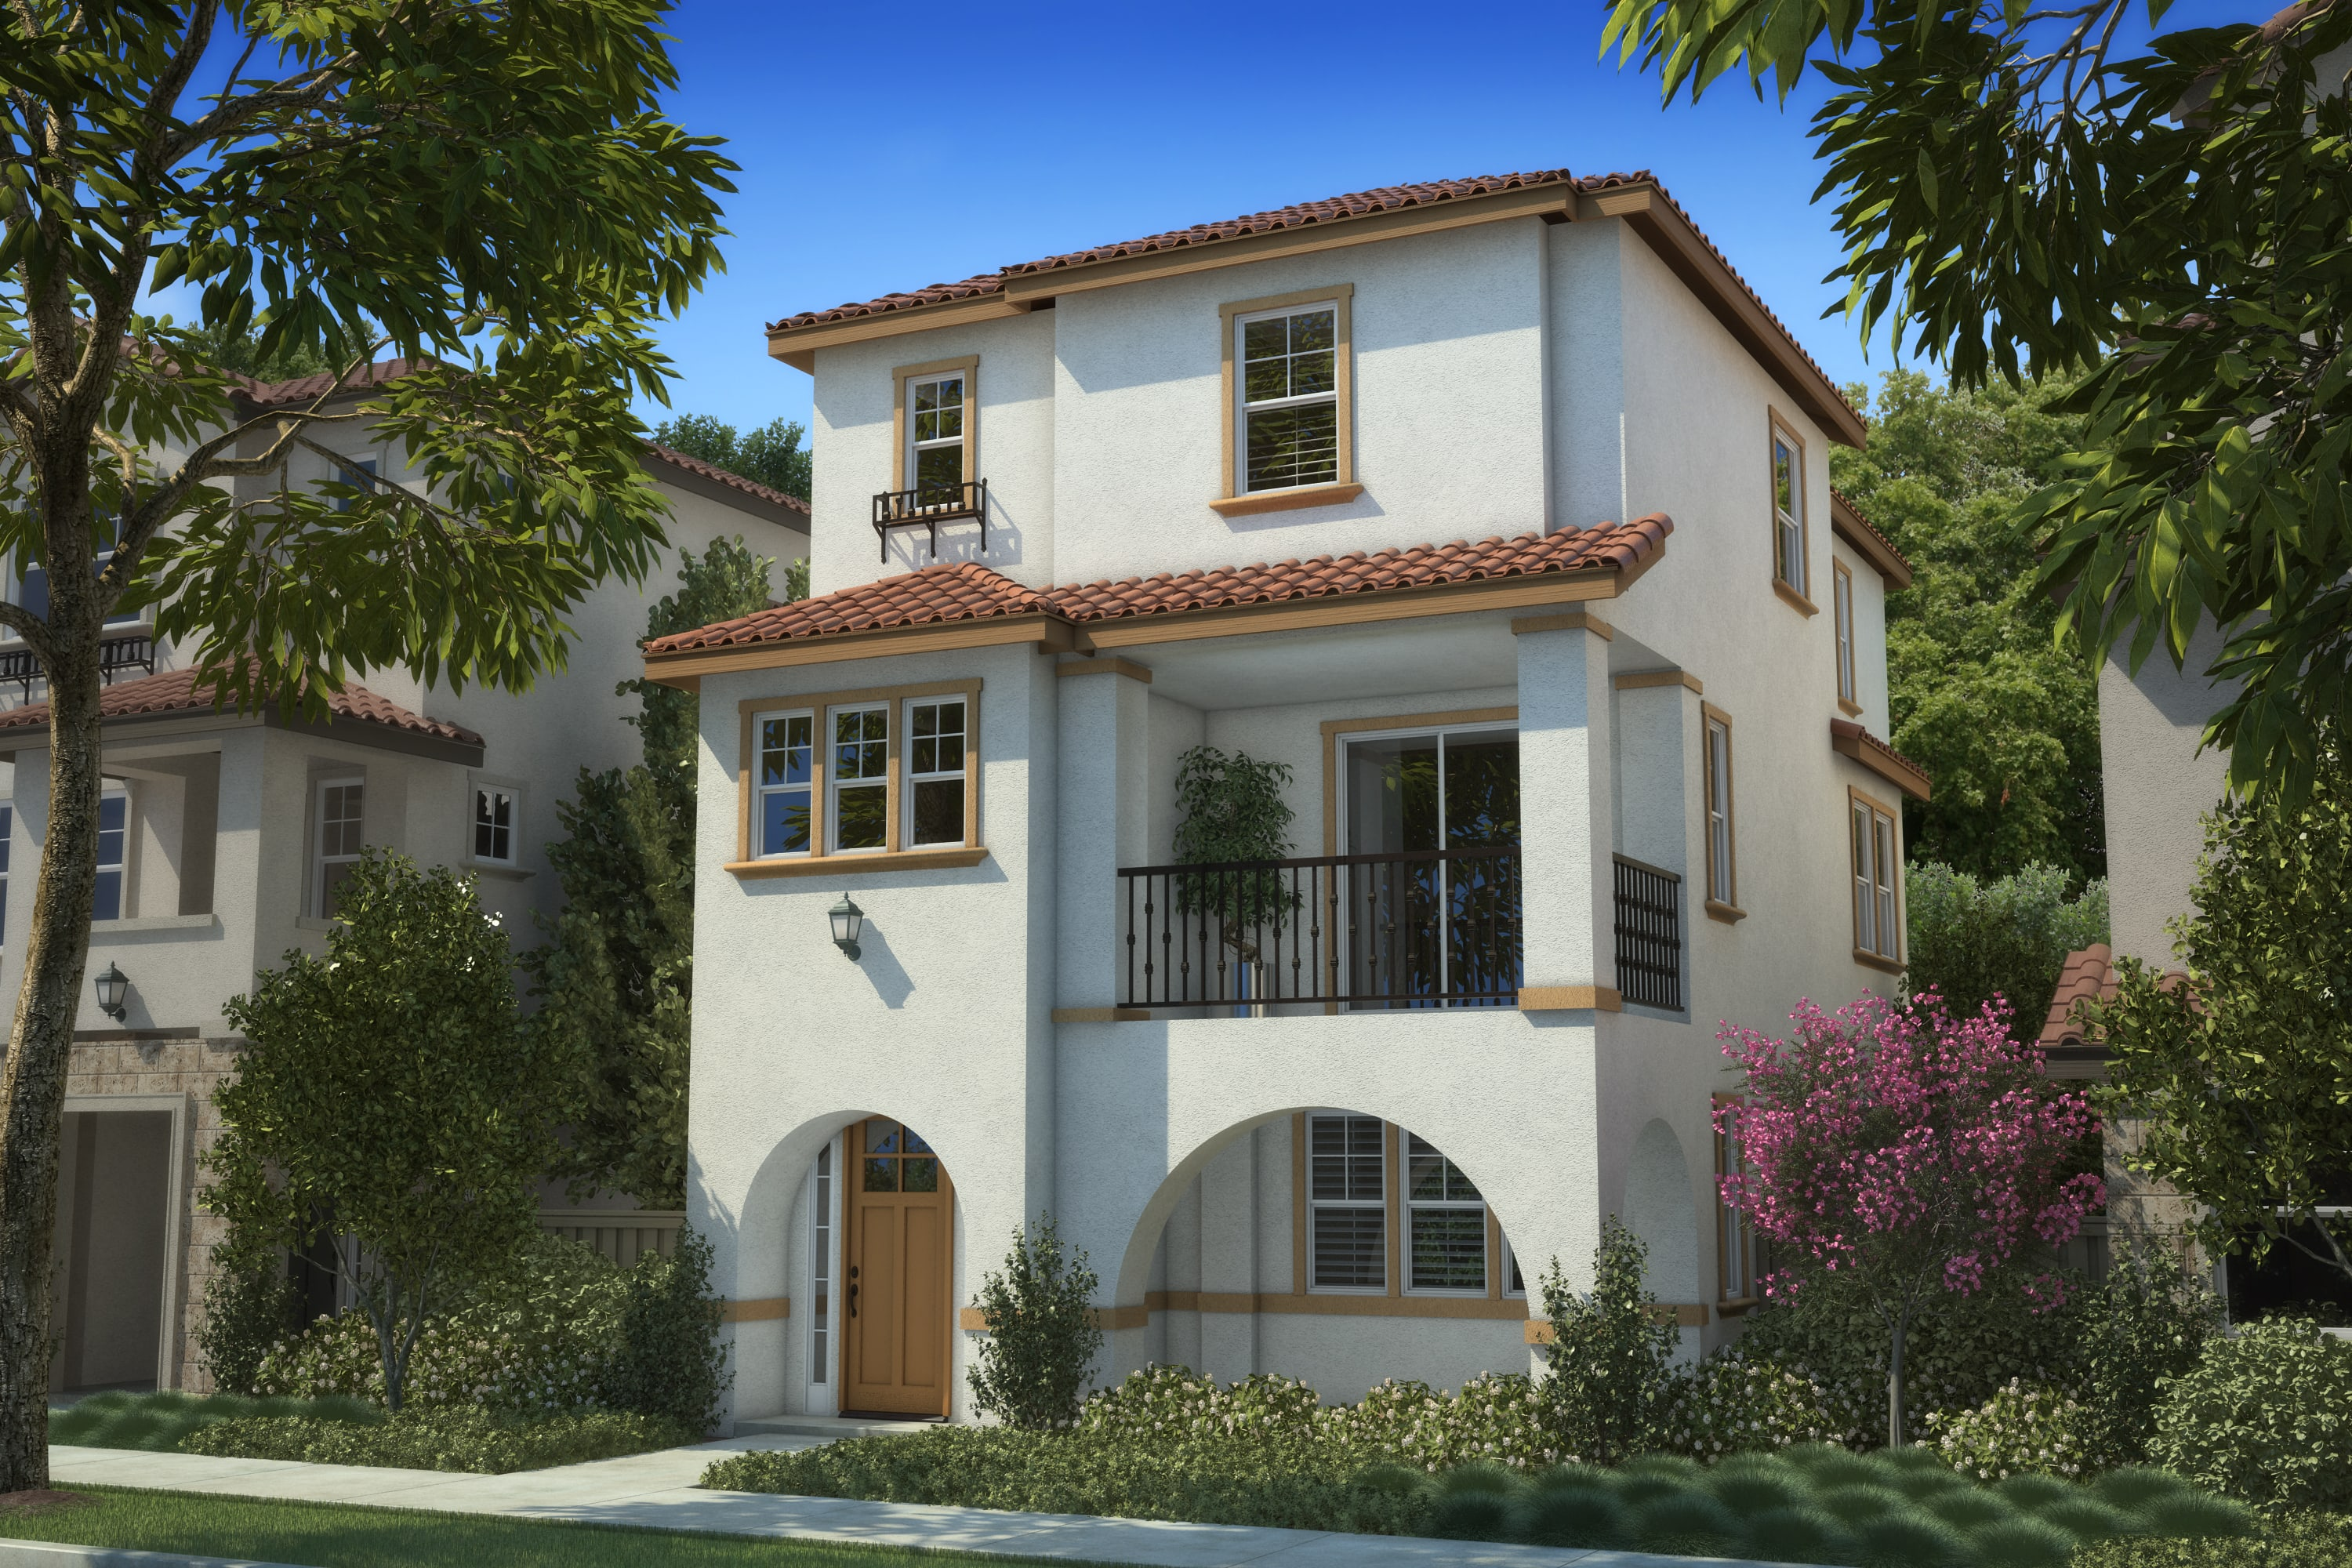 Contemporary Homes In The Heart Of San Jose, Belmont By Ponderosa Is An  Innovative Community Debuting In June 2017. Designed By Award Winning KTGY  Group ...